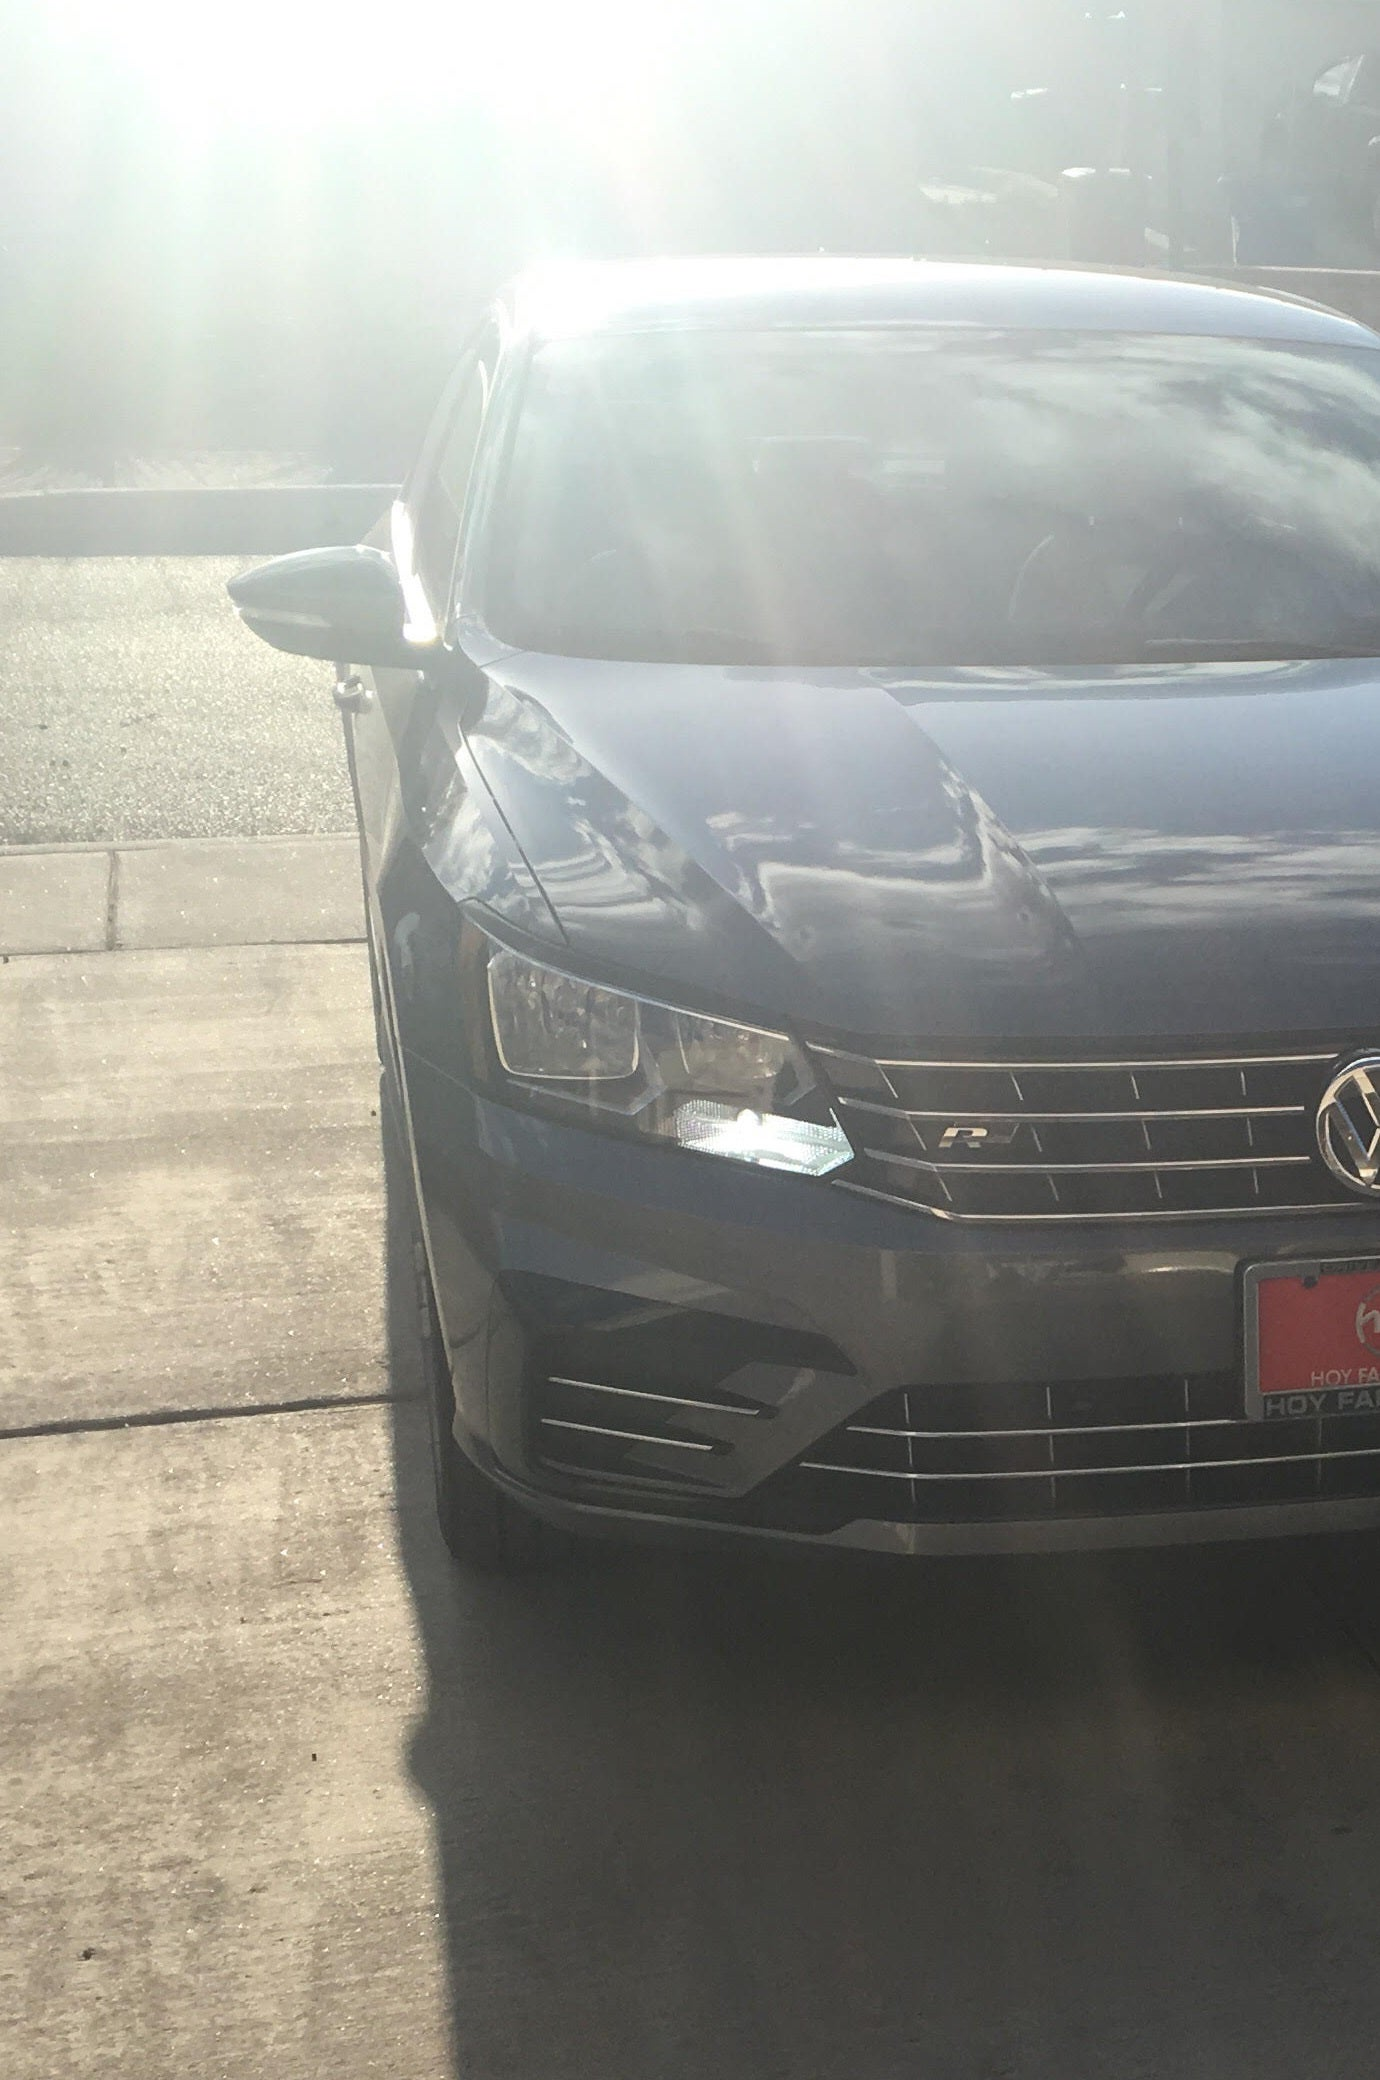 Image of Front Turn / DRL combo in white or amber for Volkswagen Passat B7 2016+ models with PWY24W bulbs